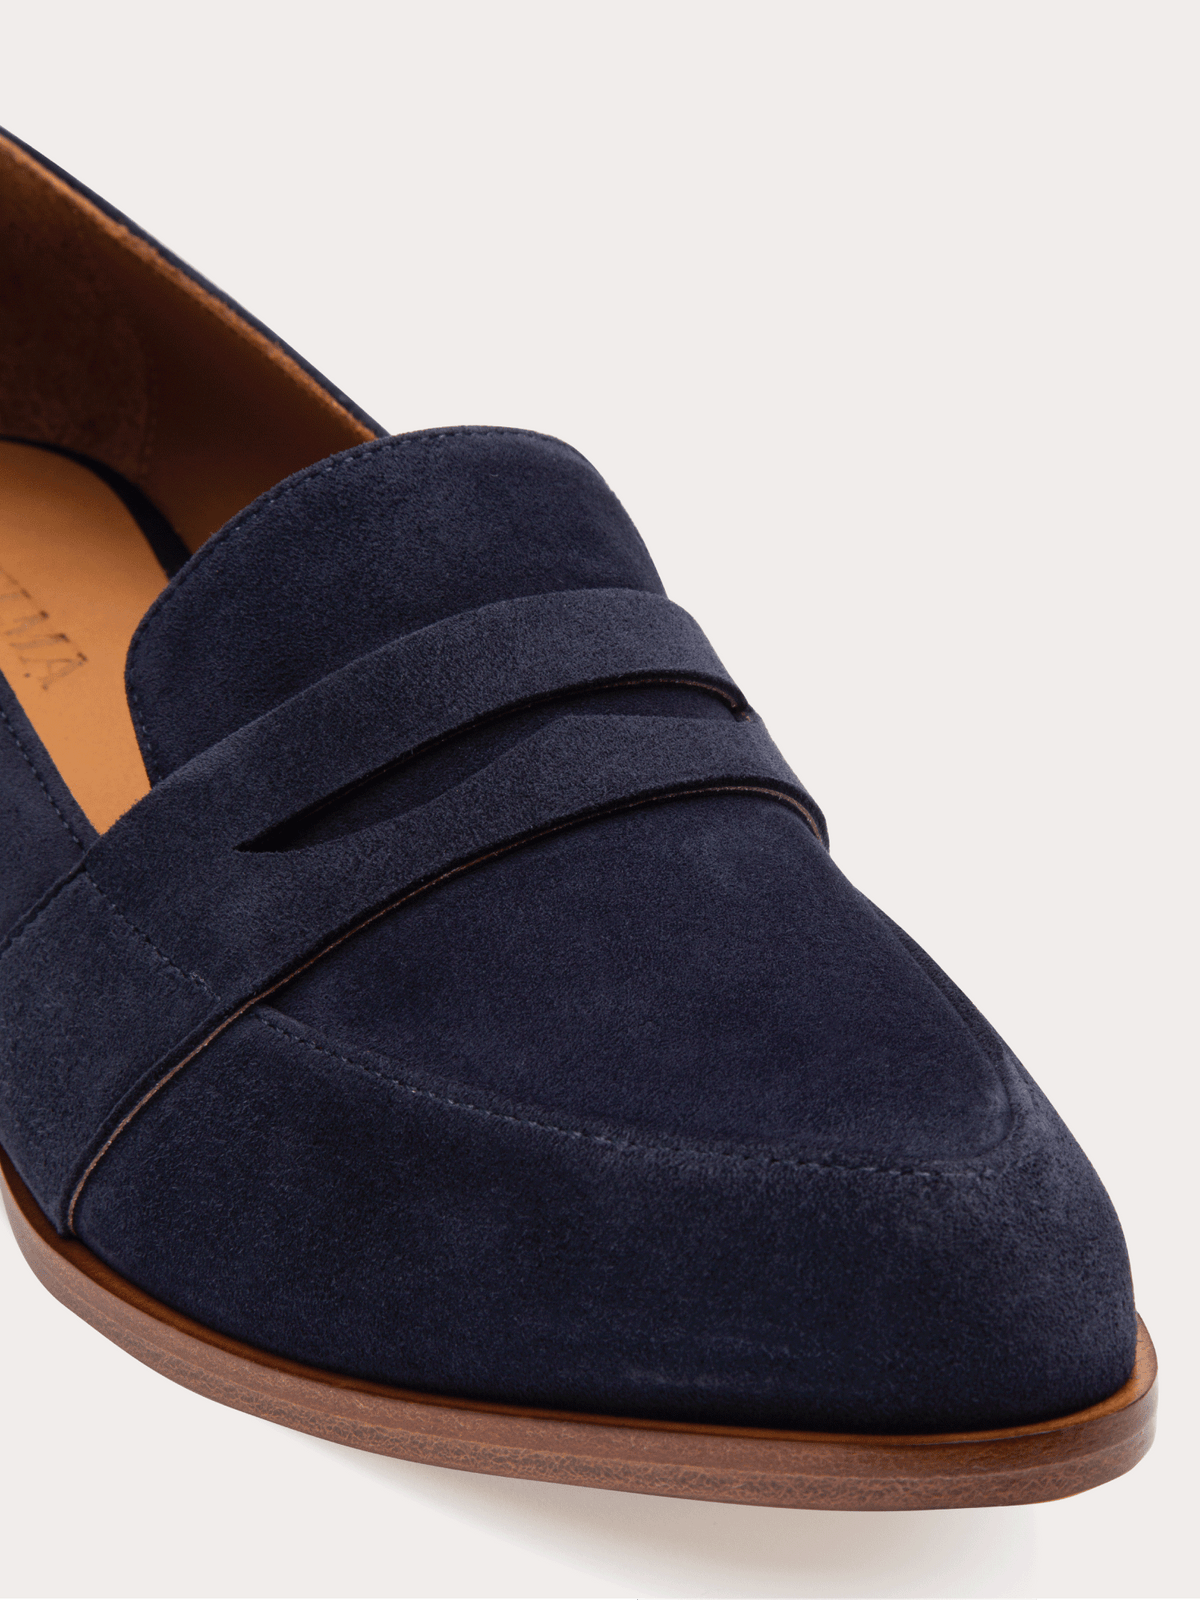 Thelma Loafer in Midnight